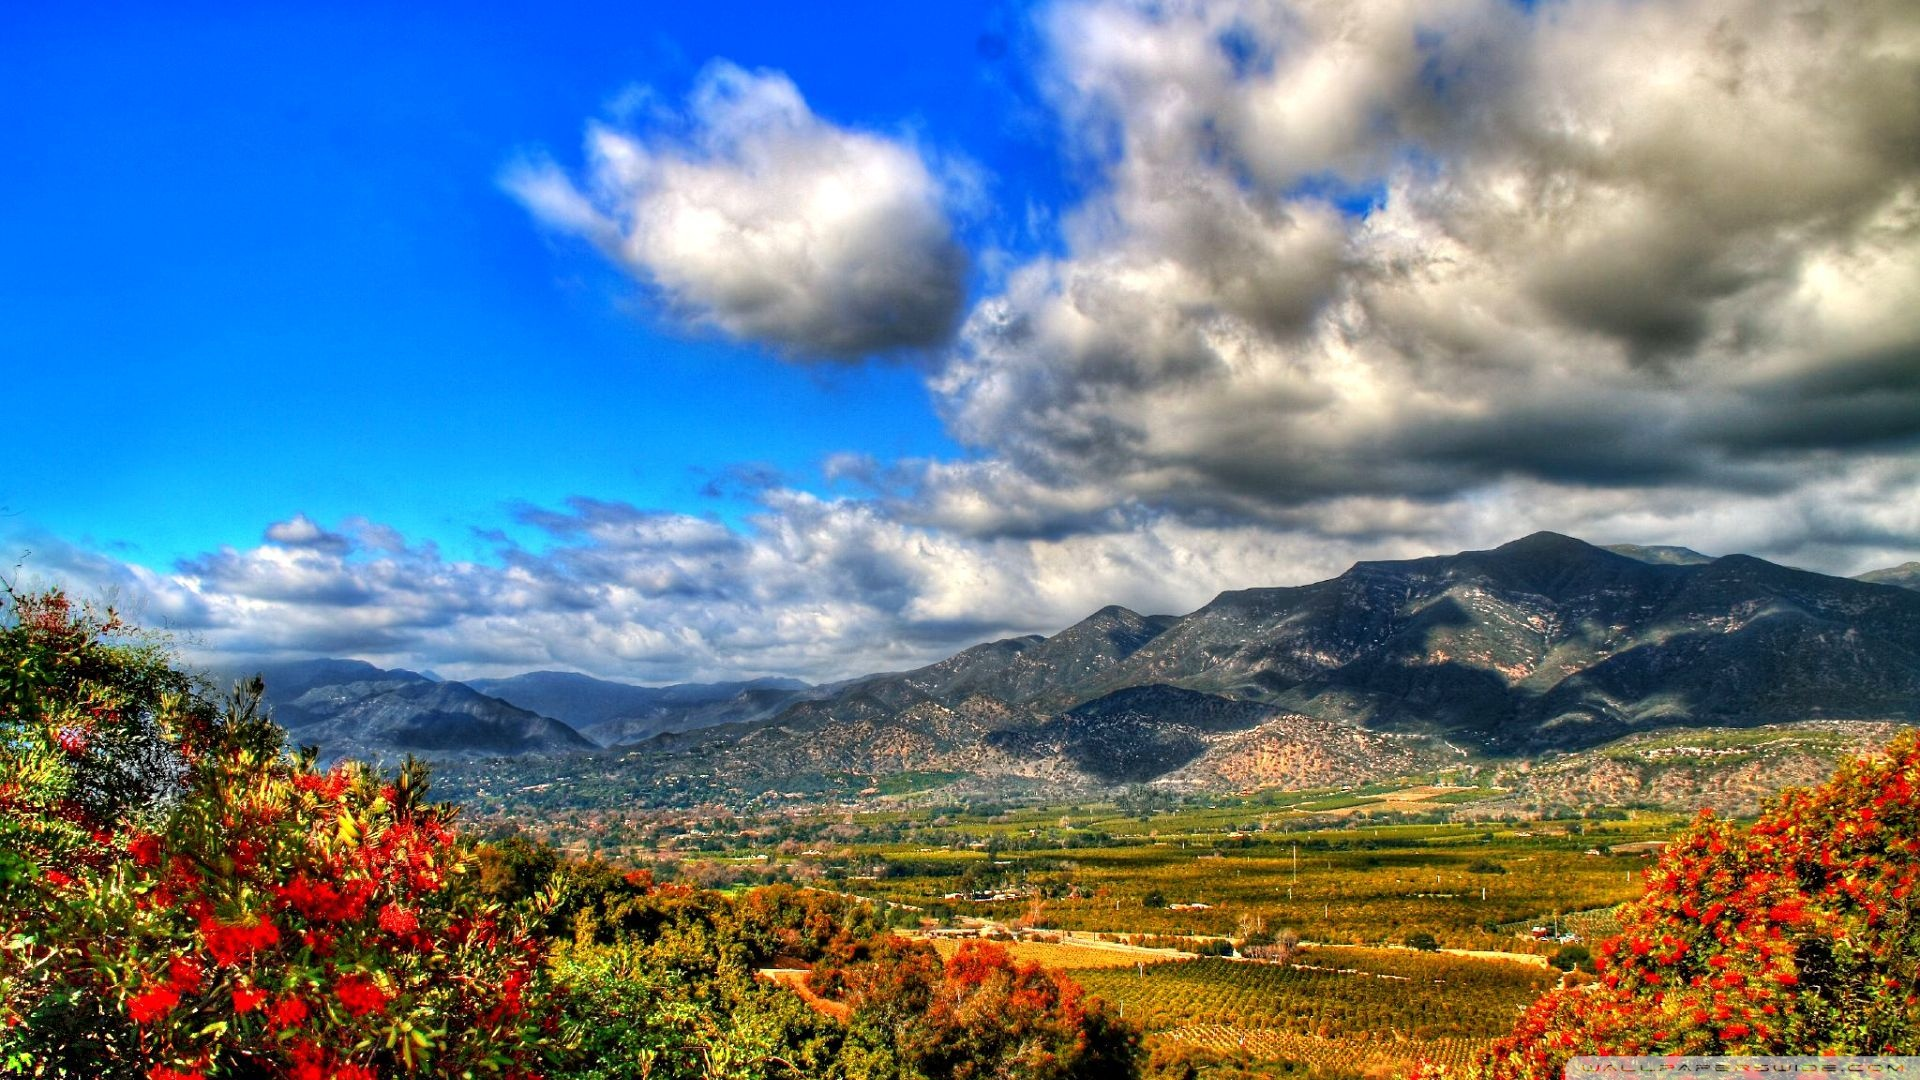 Download Autumn Mountain Landscape Hdr  1920x1080 HD Wallpaper